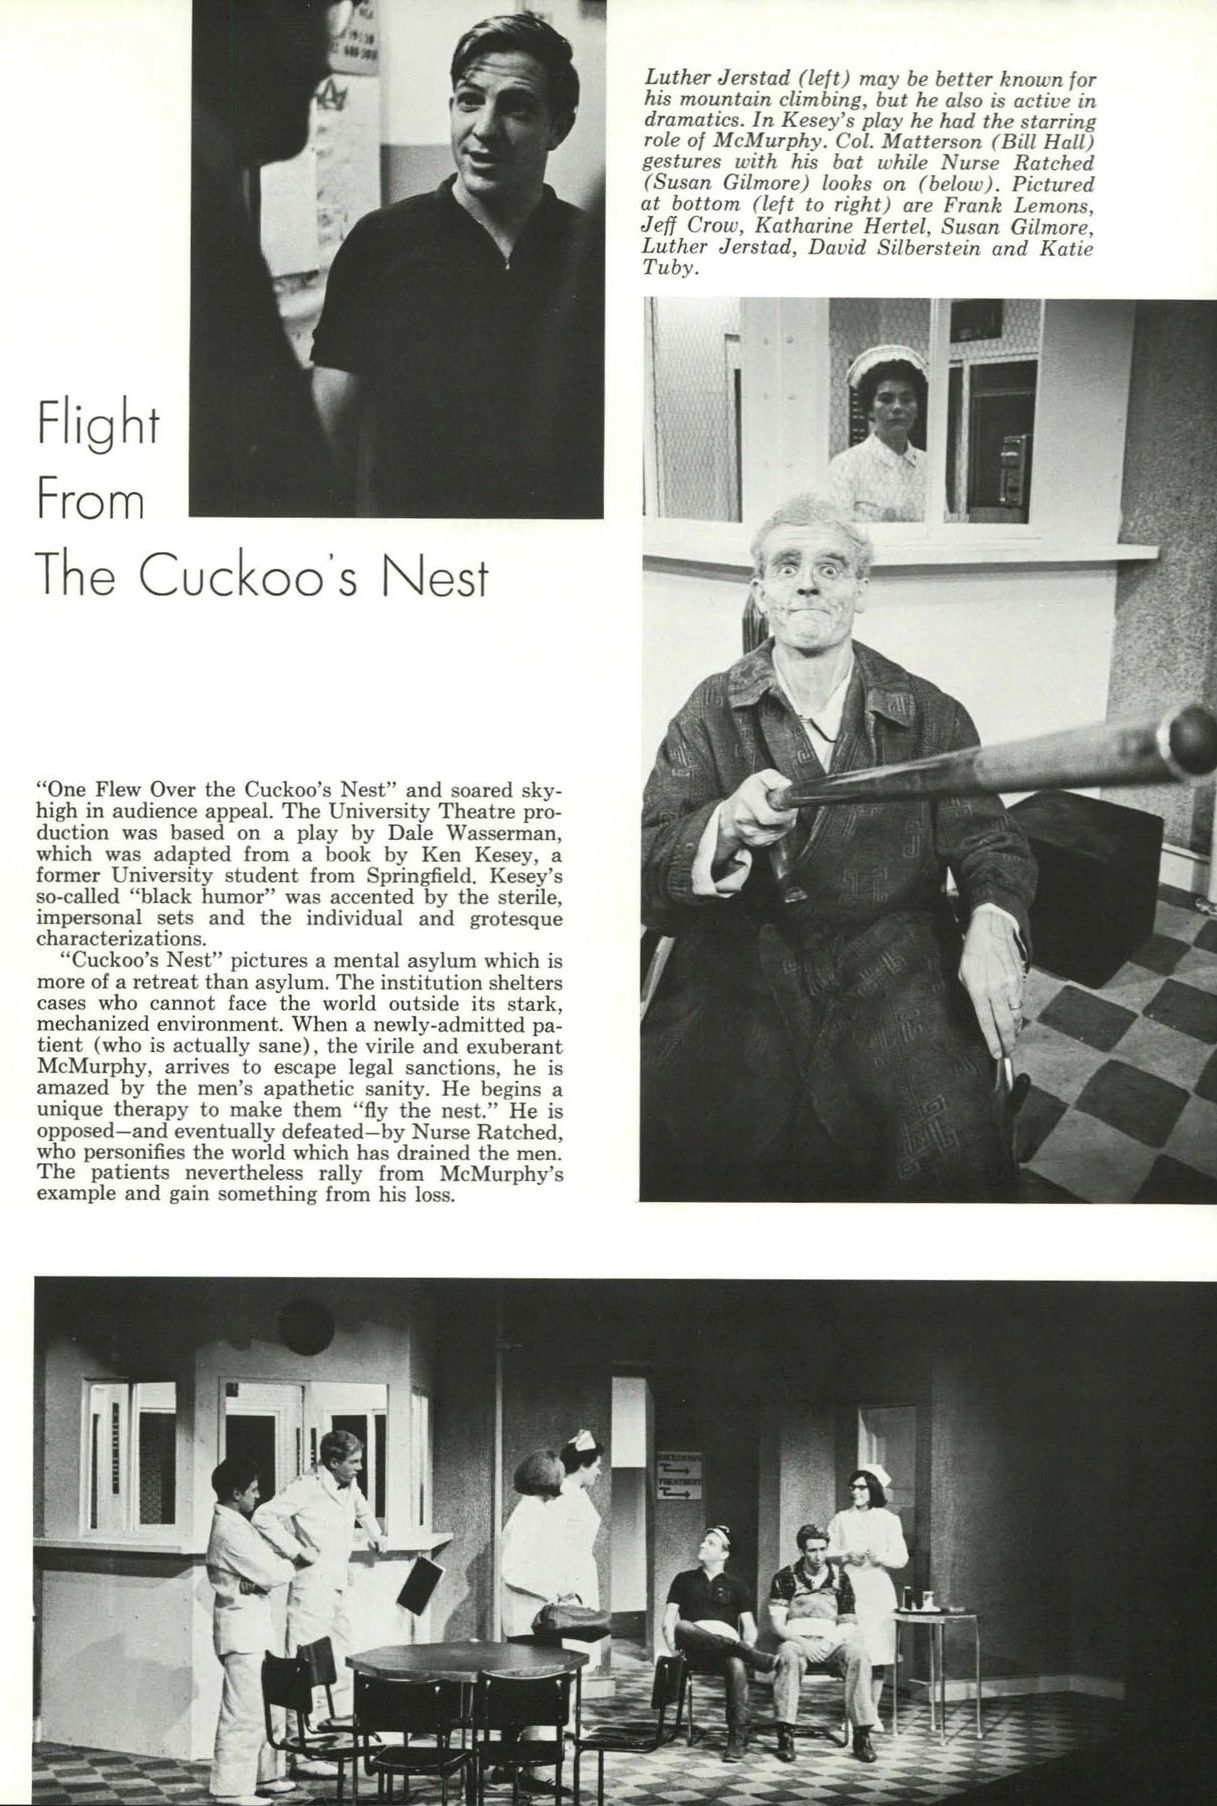 """The play """"Flight From The Cuckoos Nest"""" (based on the book by UO grad Ken Kesey) was performed by students in 1965. From the 1965 Oregana (University of Oregon yearbook). www.CampusAttic.com"""